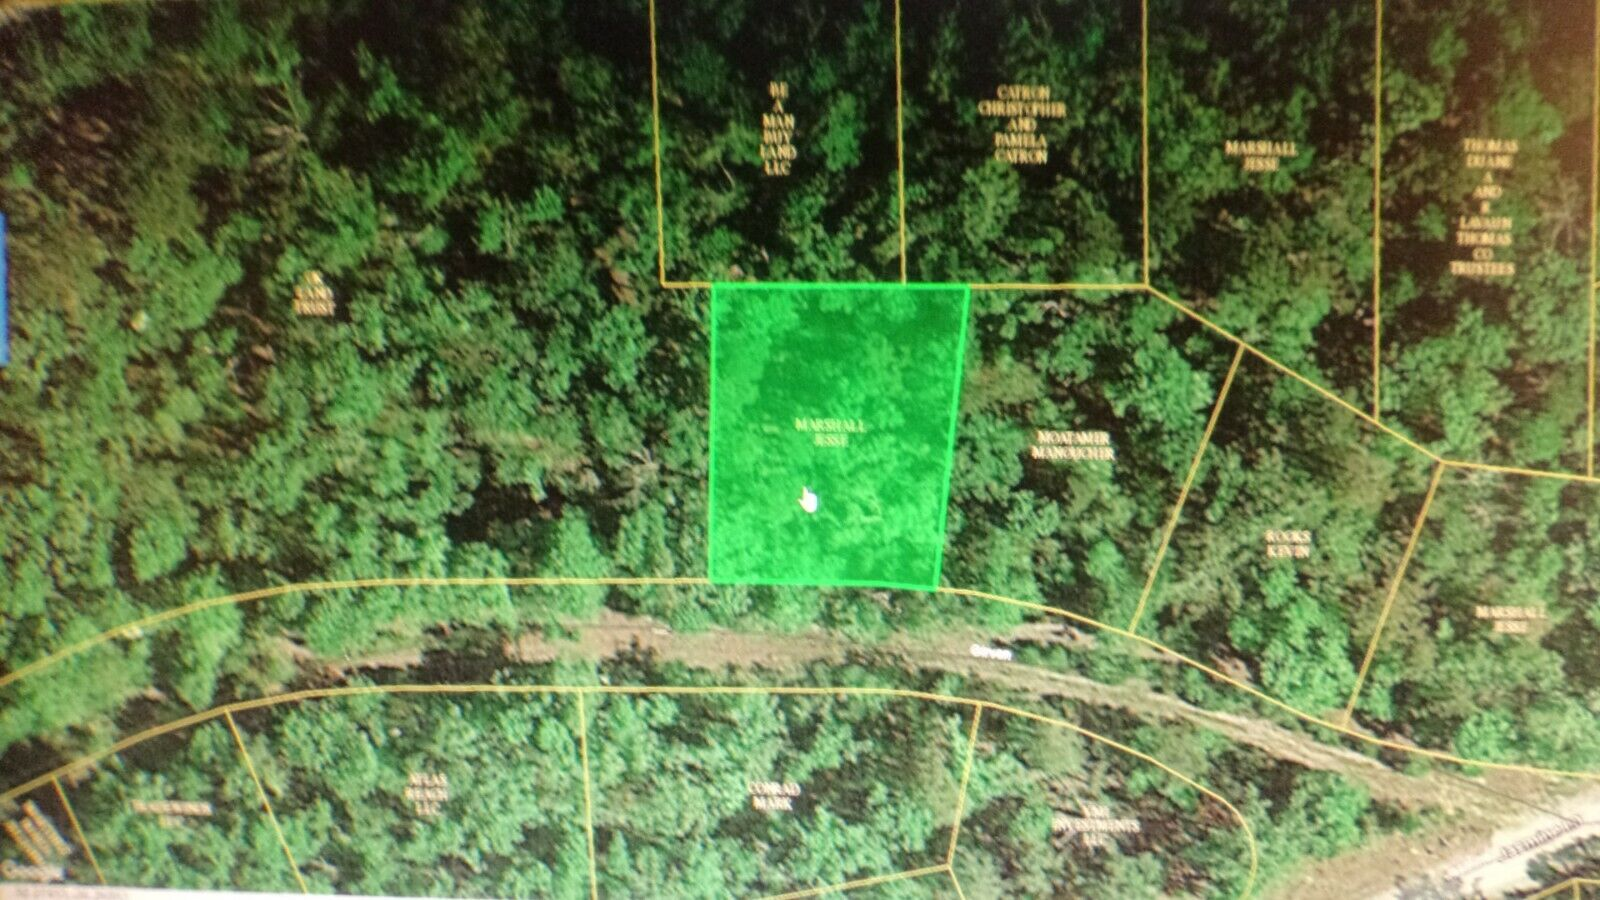 9816 Sq Feet .2253 Acre Briarcliff, AR- HALF Mile To Norfork Lake POWER CLOSE - $202.50